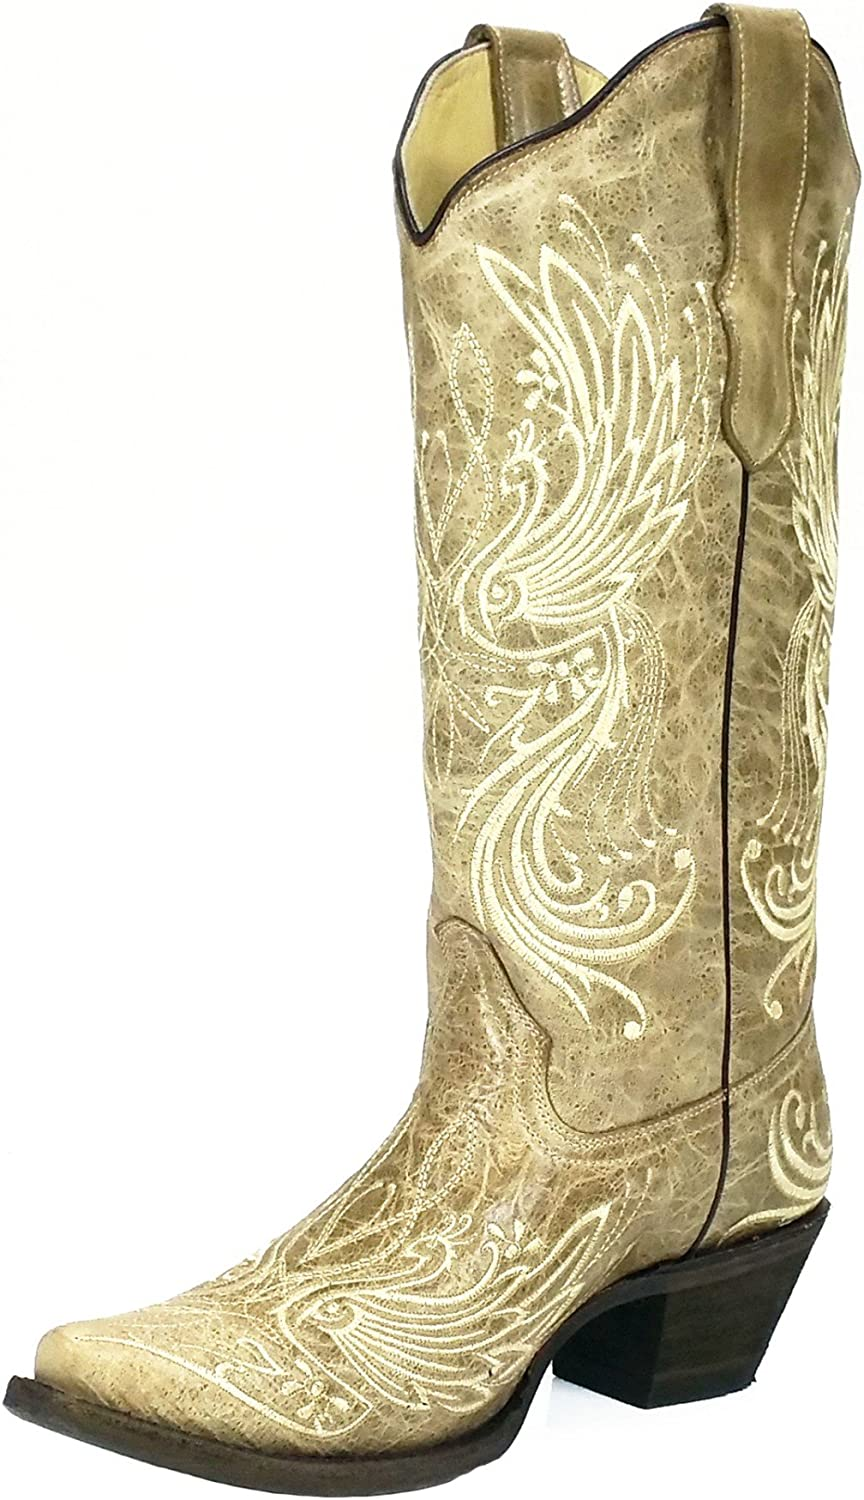 Corral E1035 Bone Beige Angel Wings Embroidered Boots